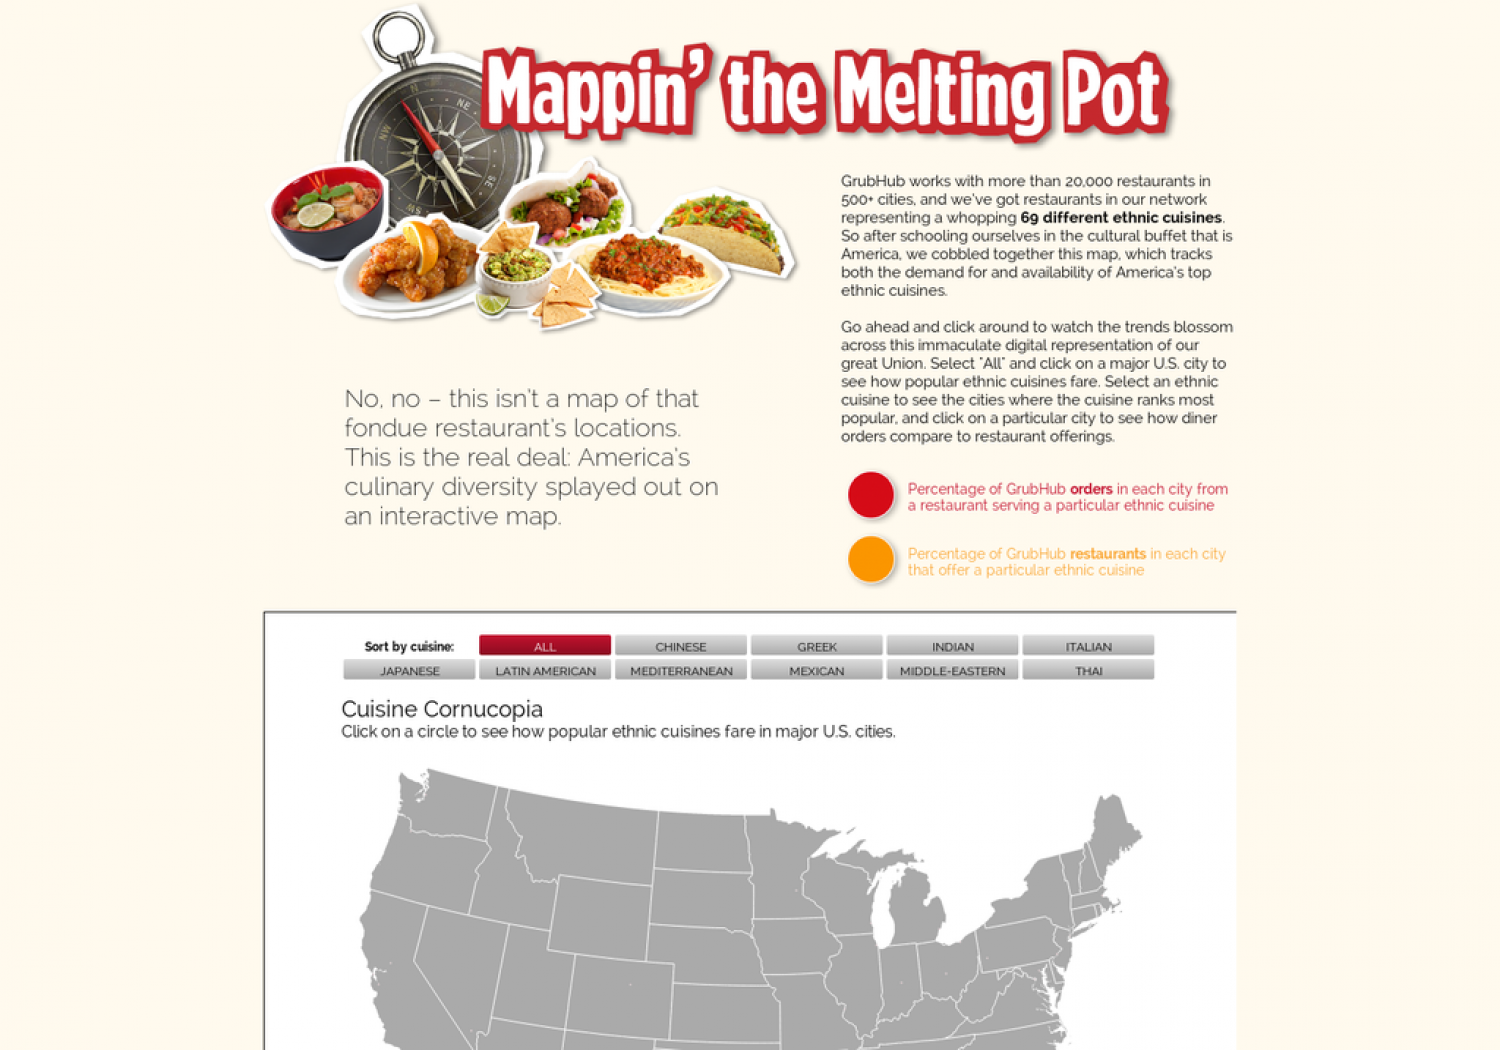 Mappin' the Melting Pot Infographic